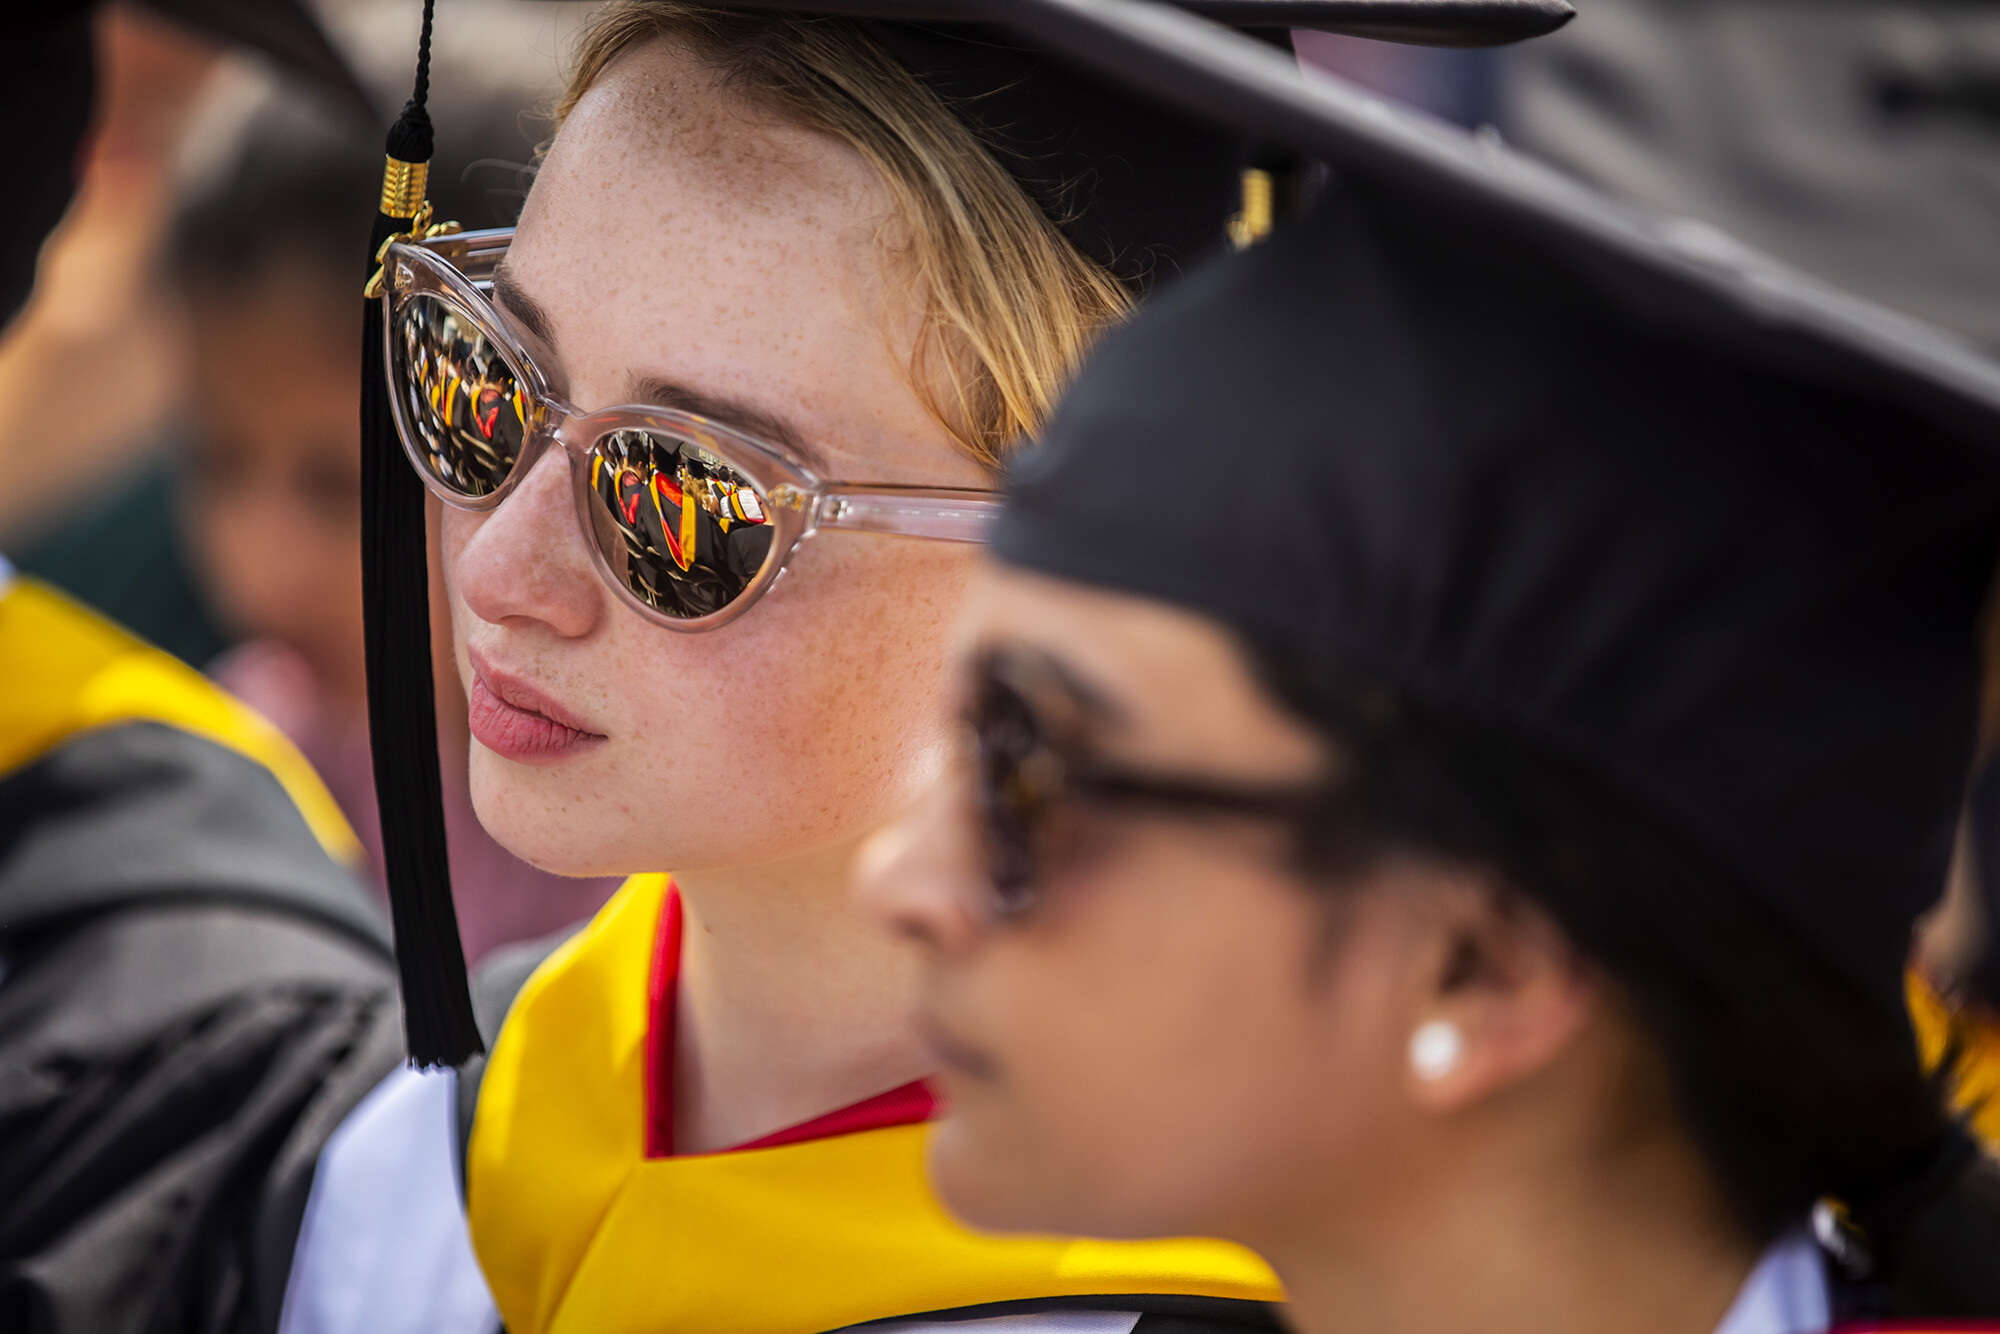 Graduate in sunglasses seated with reflection of other graduates in sunglasses.